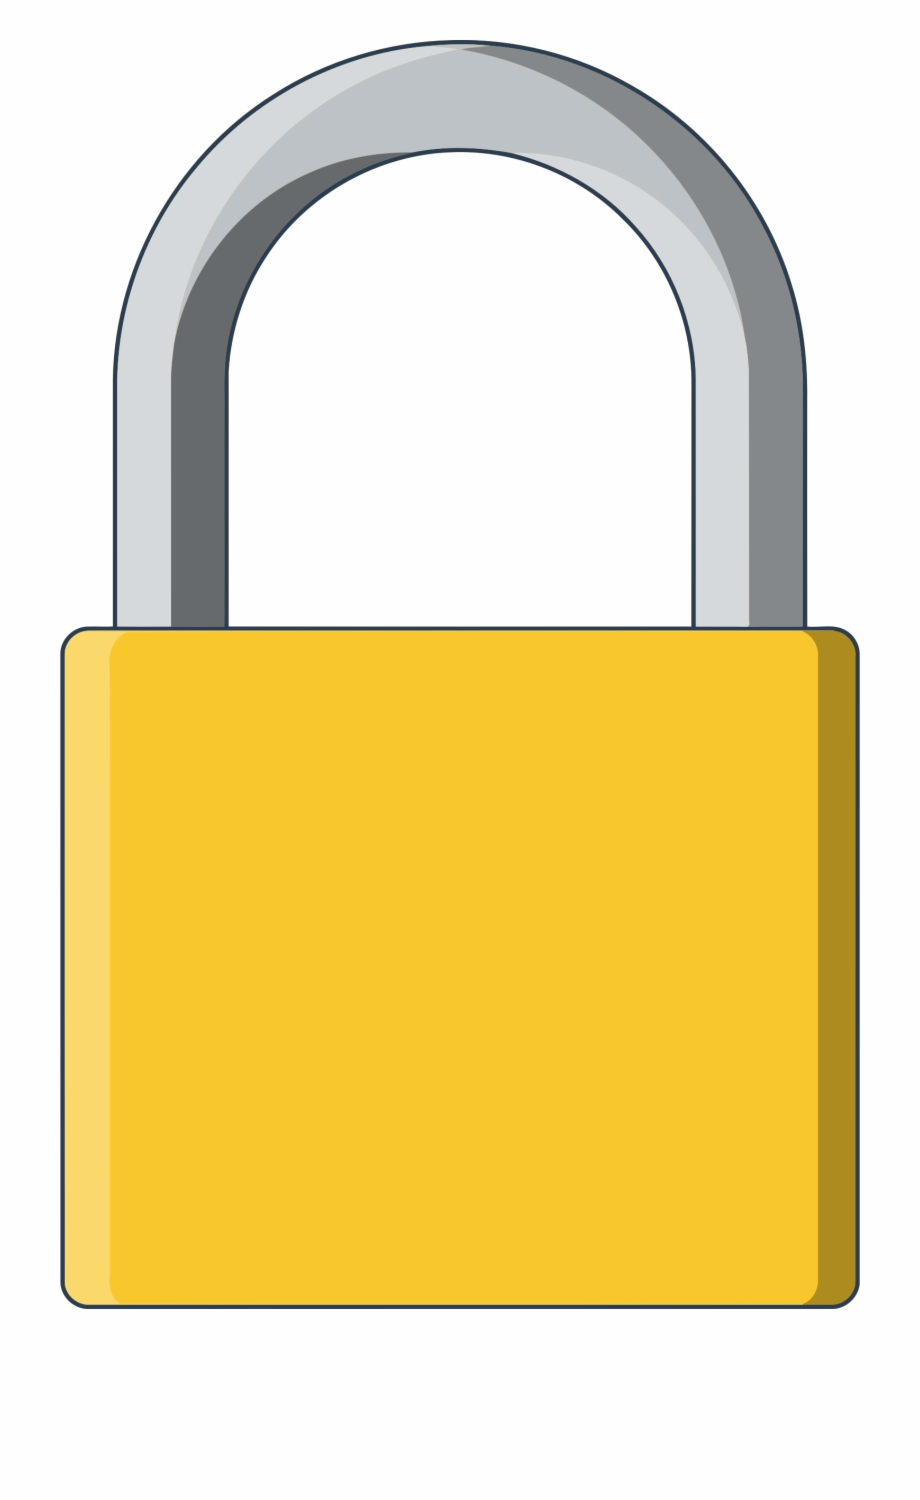 Png Royalty Free Library Key Lock Clipart.